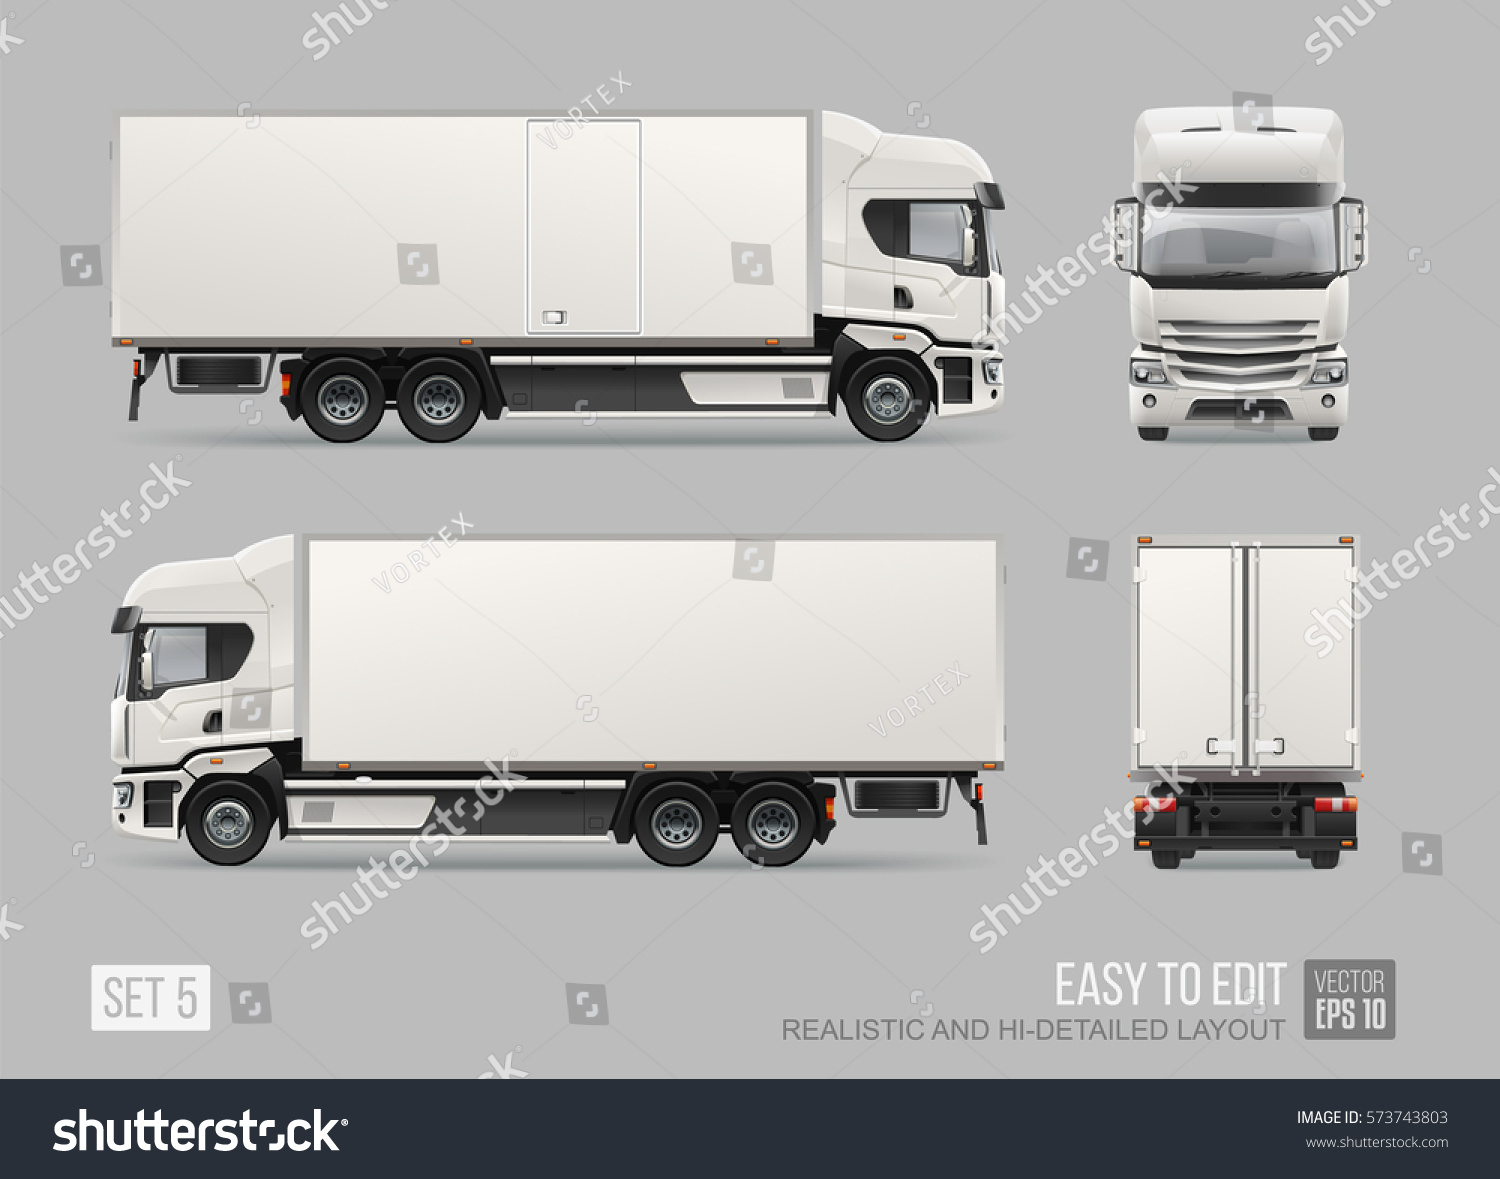 commercial delivery cargo truck vector template stock vector 573743803 shutterstock. Black Bedroom Furniture Sets. Home Design Ideas